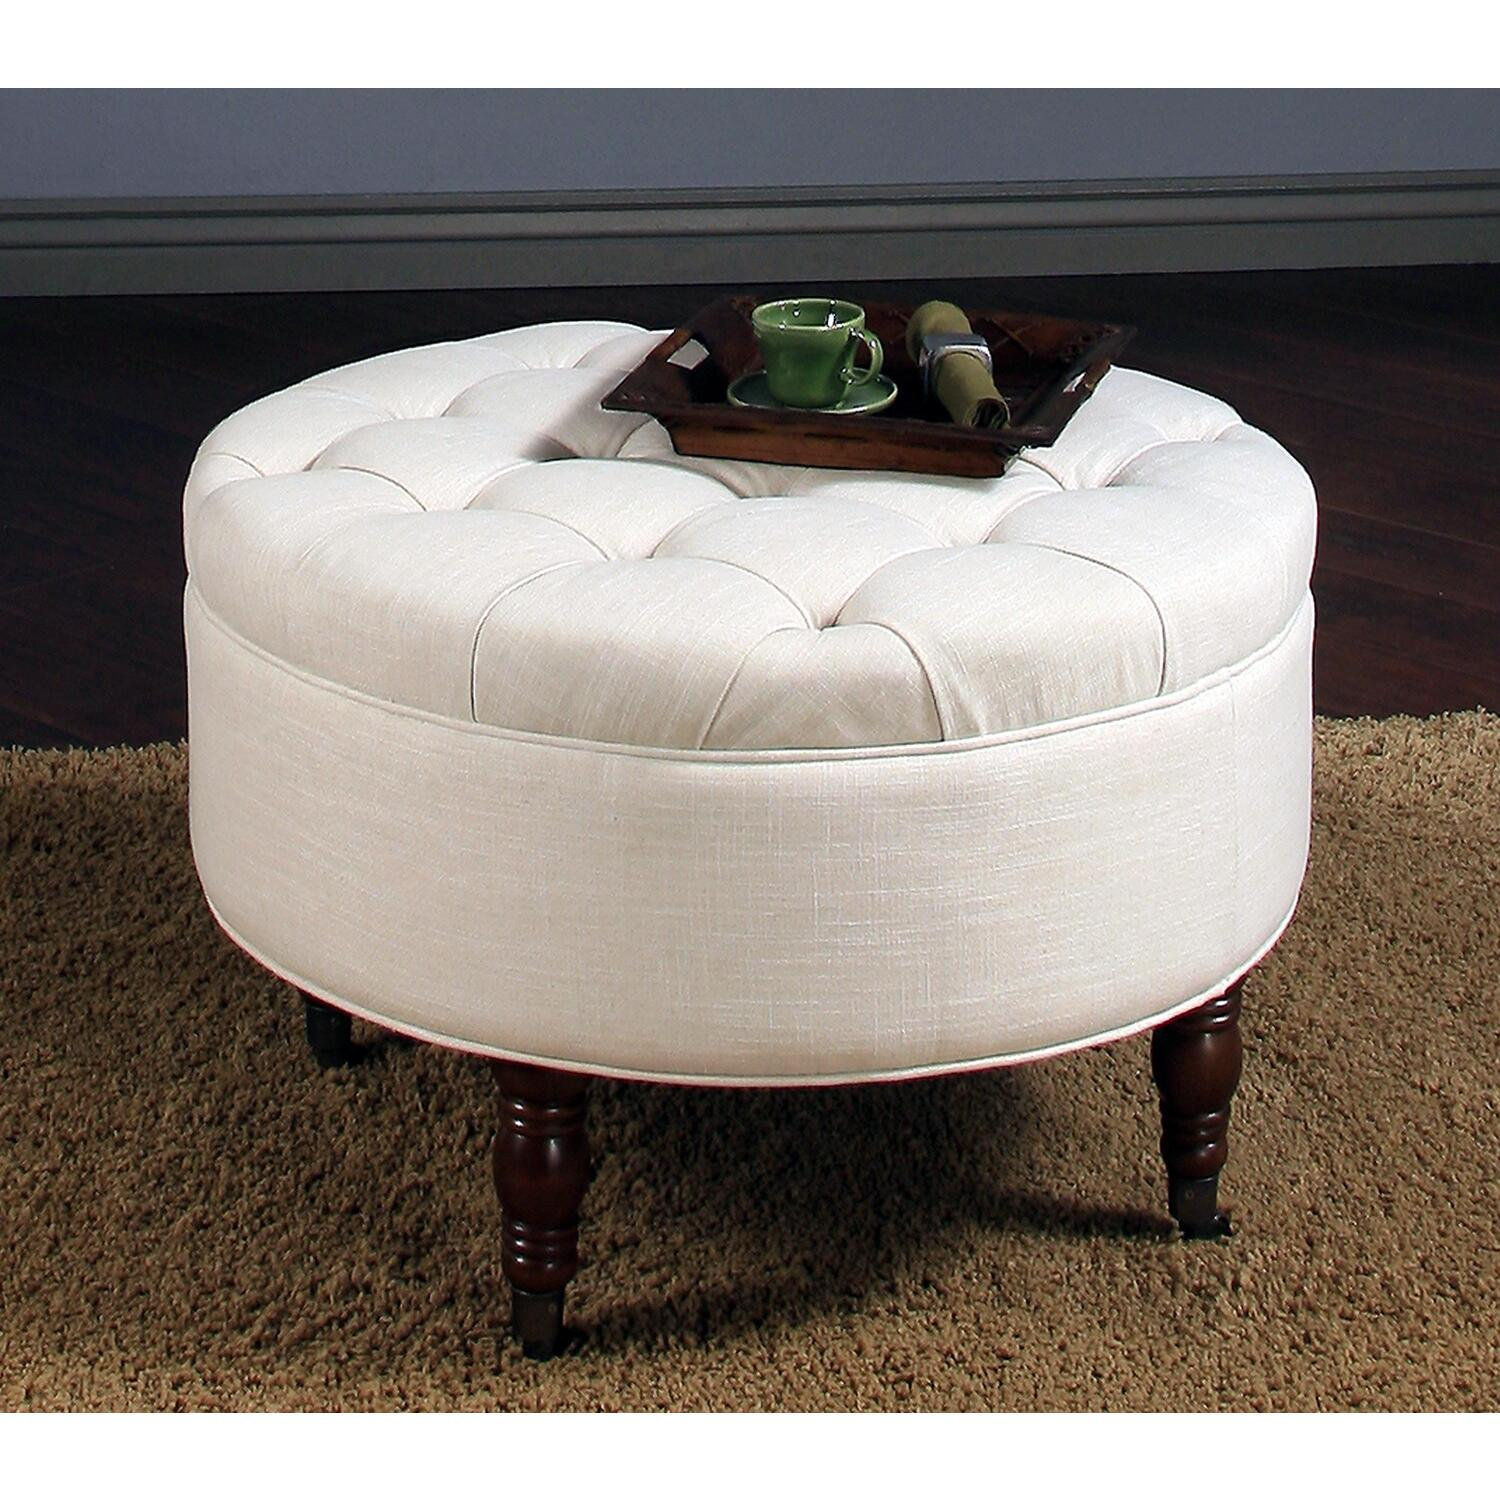 Arence Round Flip Top Tufted Ottoman Ojcommerce